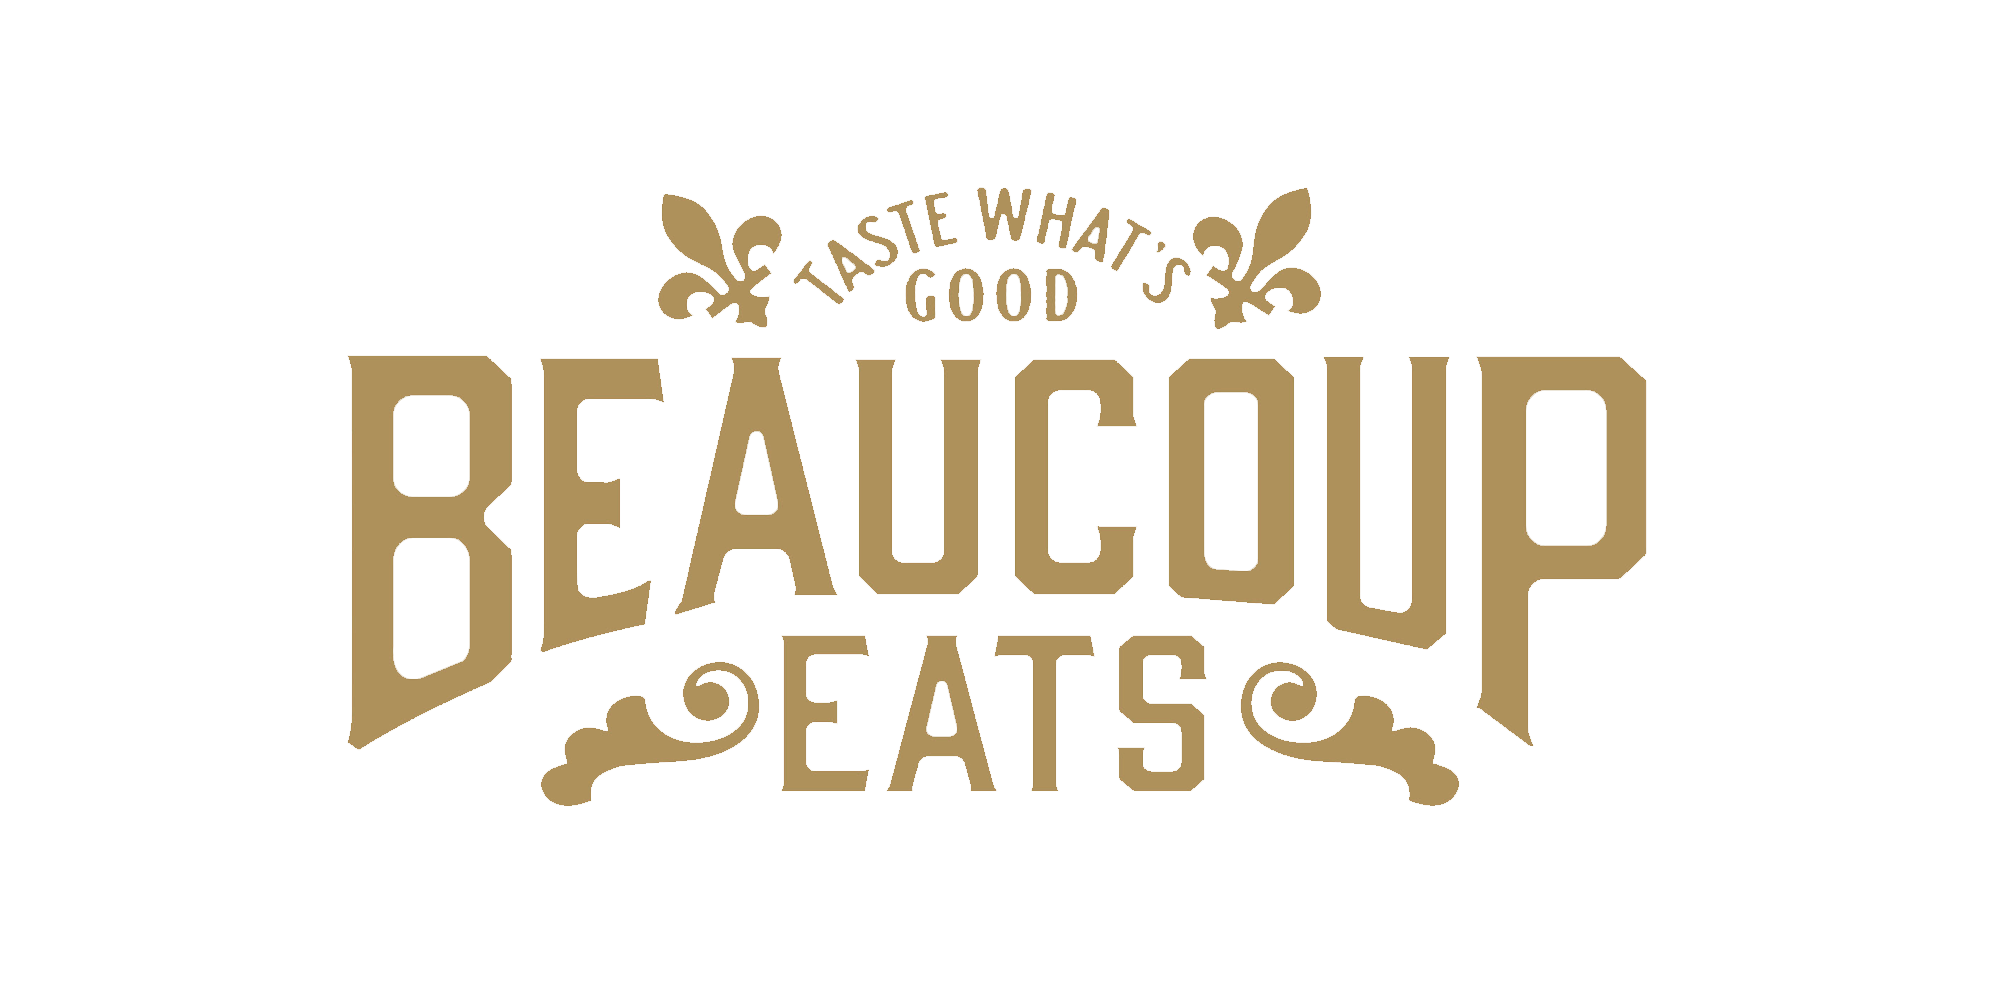 Beaucoup Eats is a Uptown New Orleans neighborhood Eatery which serves up Creole Comfort Cuisine and provides full service catering. Our Motto is